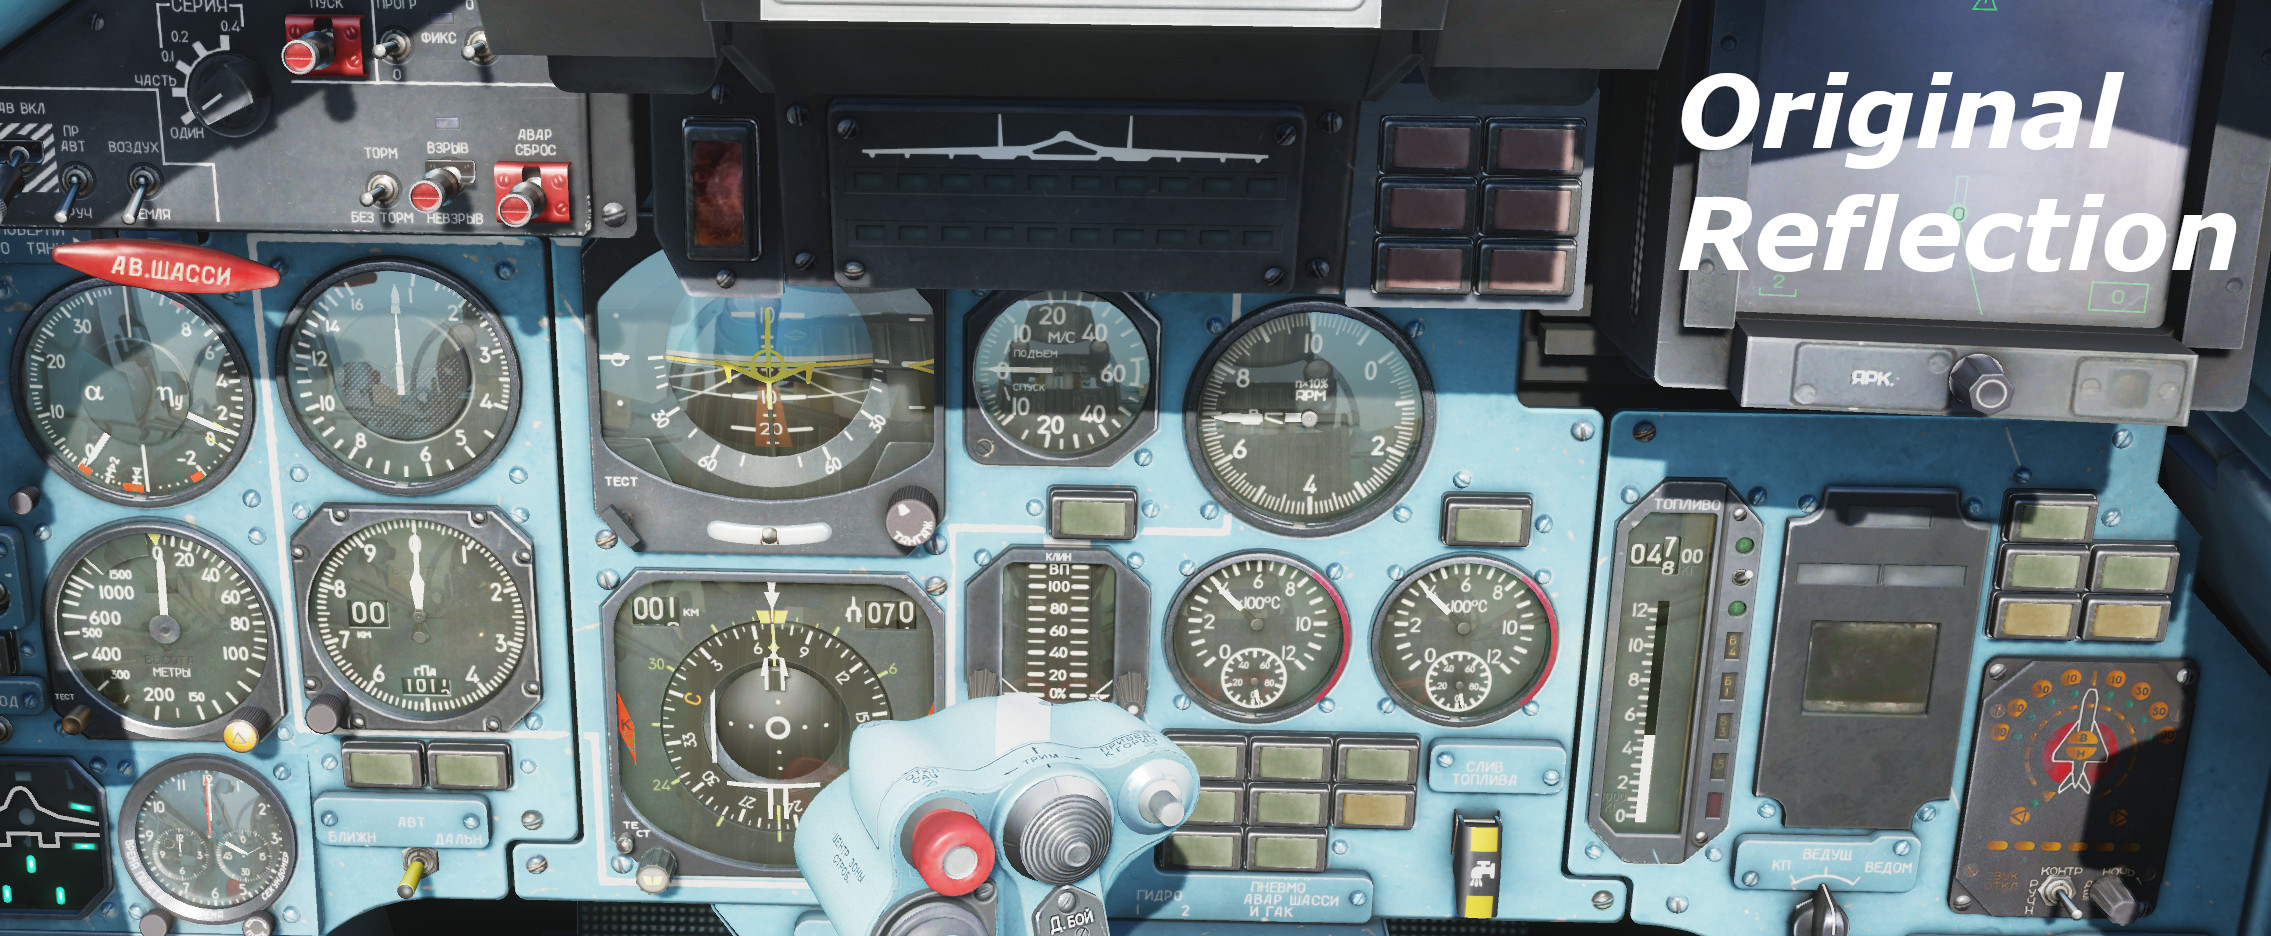 Su33 Cockpit Instrument Reflection Mod